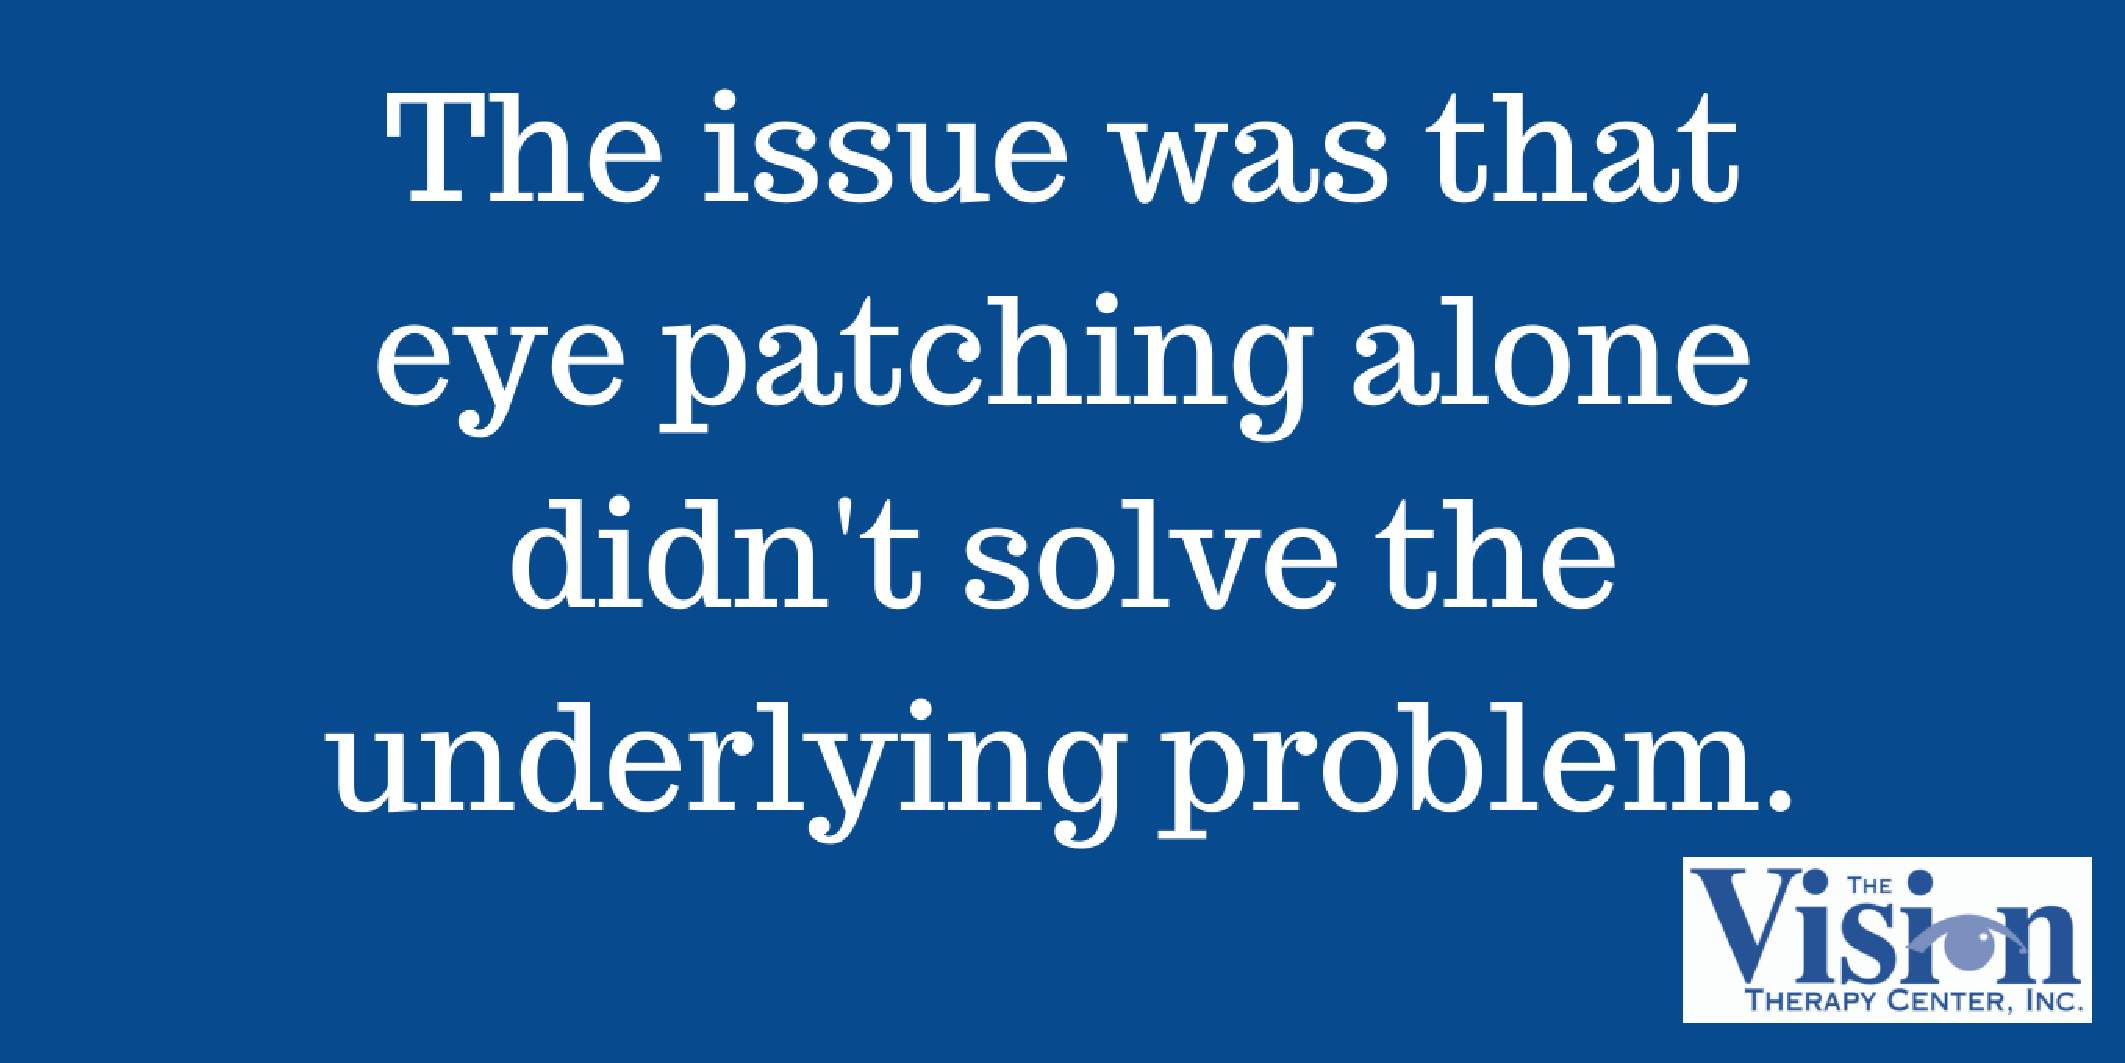 Patching alone doesn't solve problem.